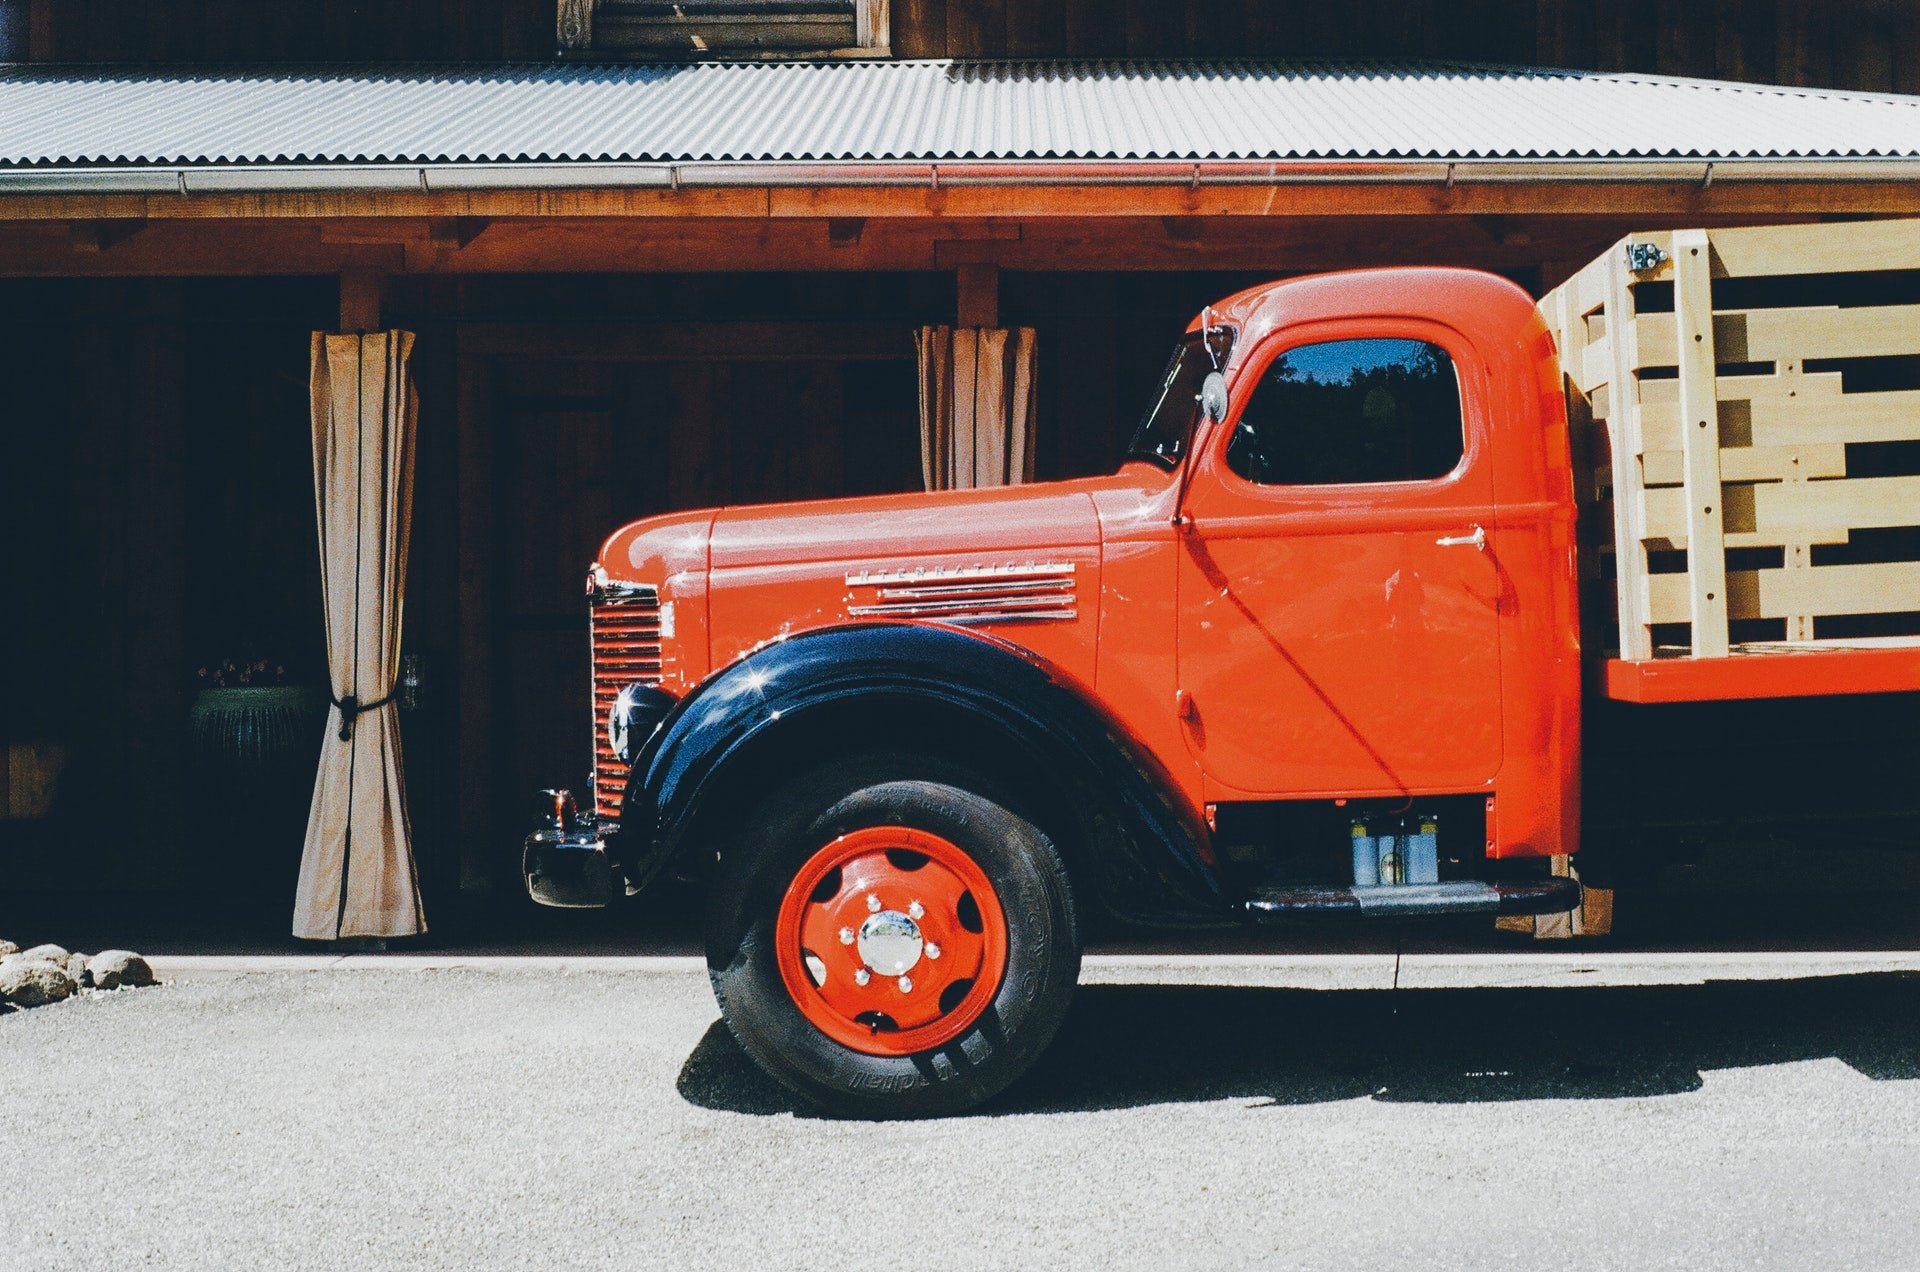 vehicle-vintage-old-truck.jpg